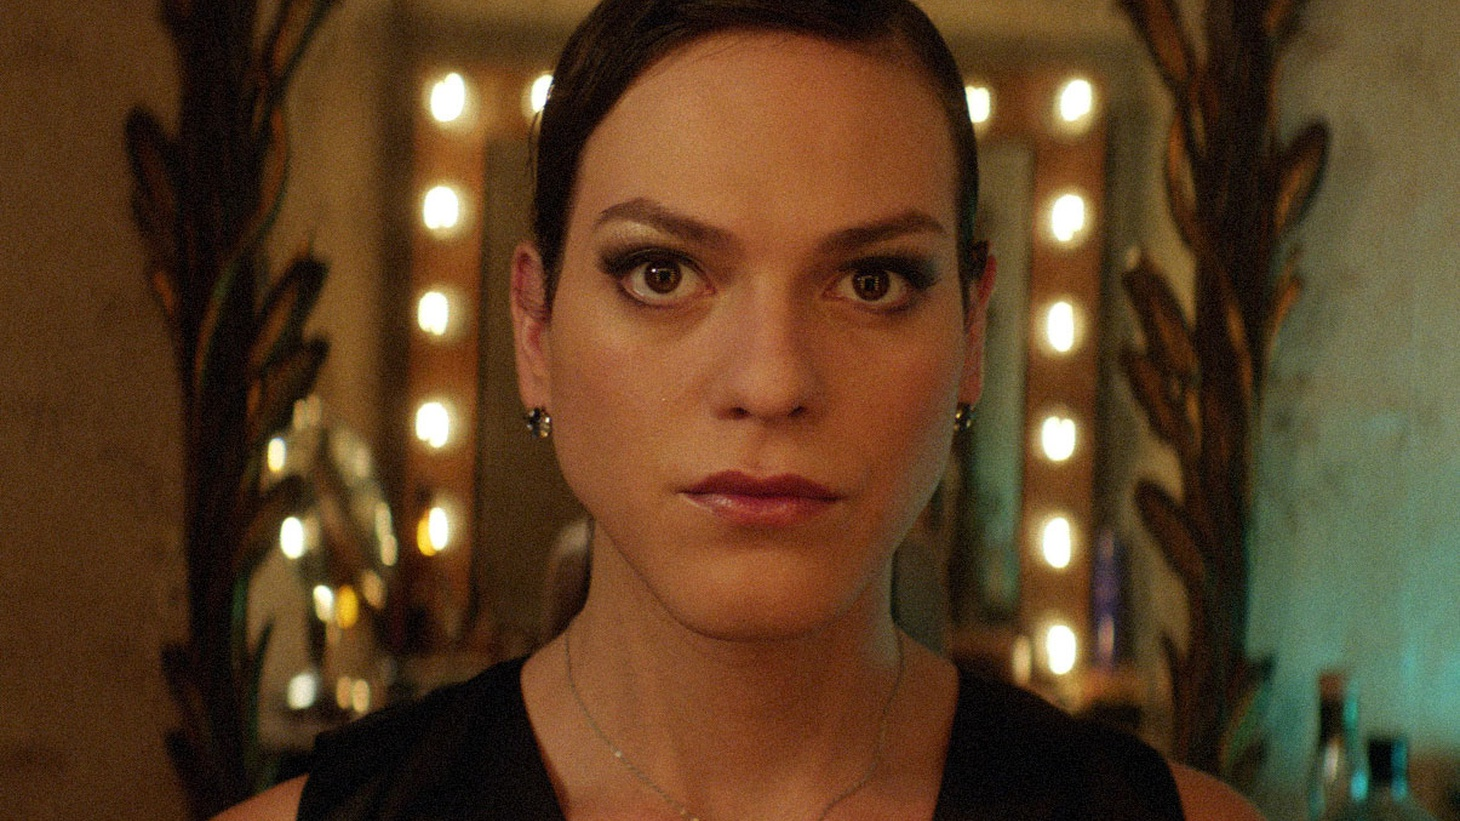 For the now Oscar-nominated Chilean film 'A Fantastic Woman,' director Sebastián Lelio cast transgender actress Daniela Vega as a trans woman dealing with the sudden loss of of her partner.